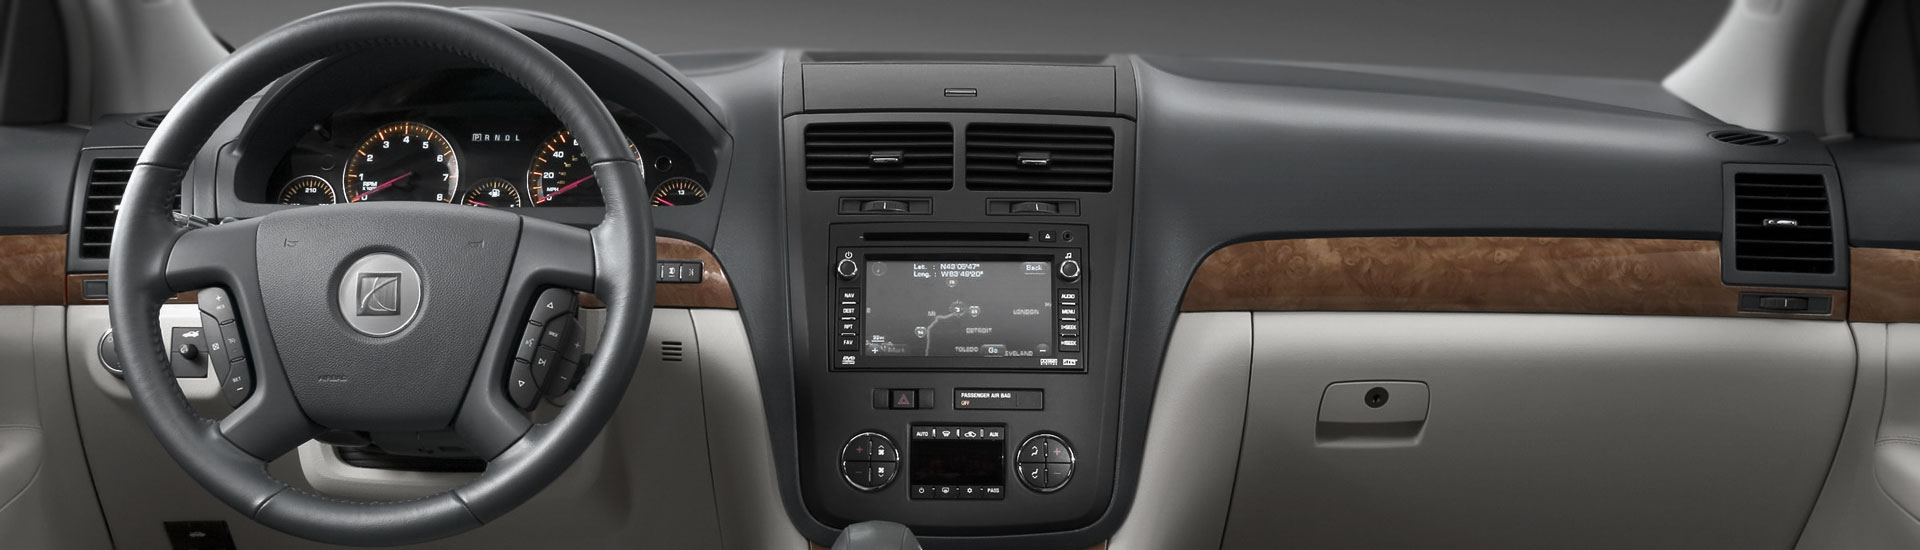 1997 Saturn S-Series Custom Dash Kits